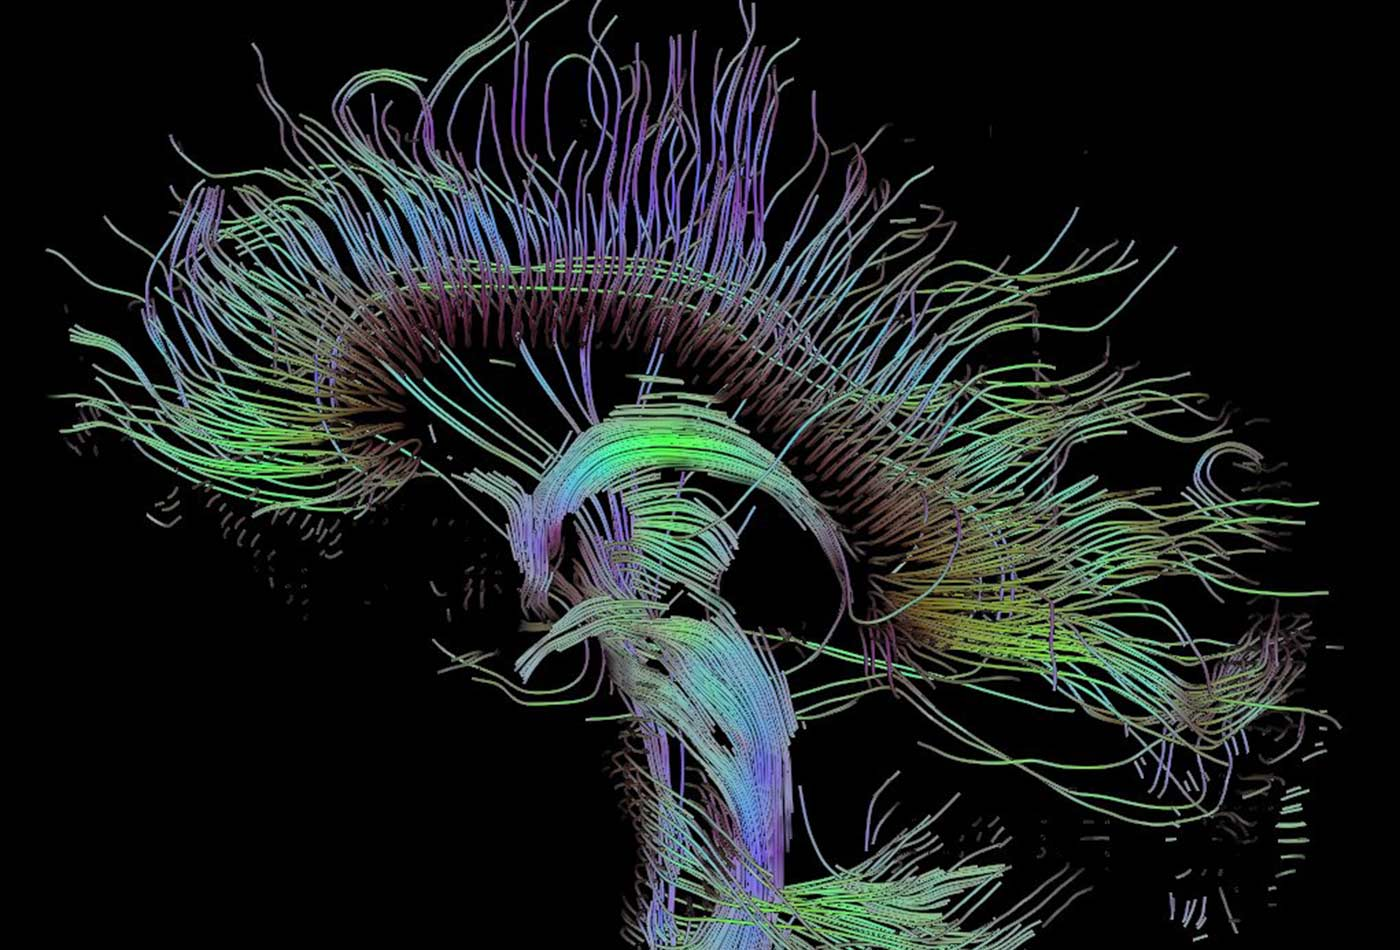 Visualization of a DTI measurement of a human brain.